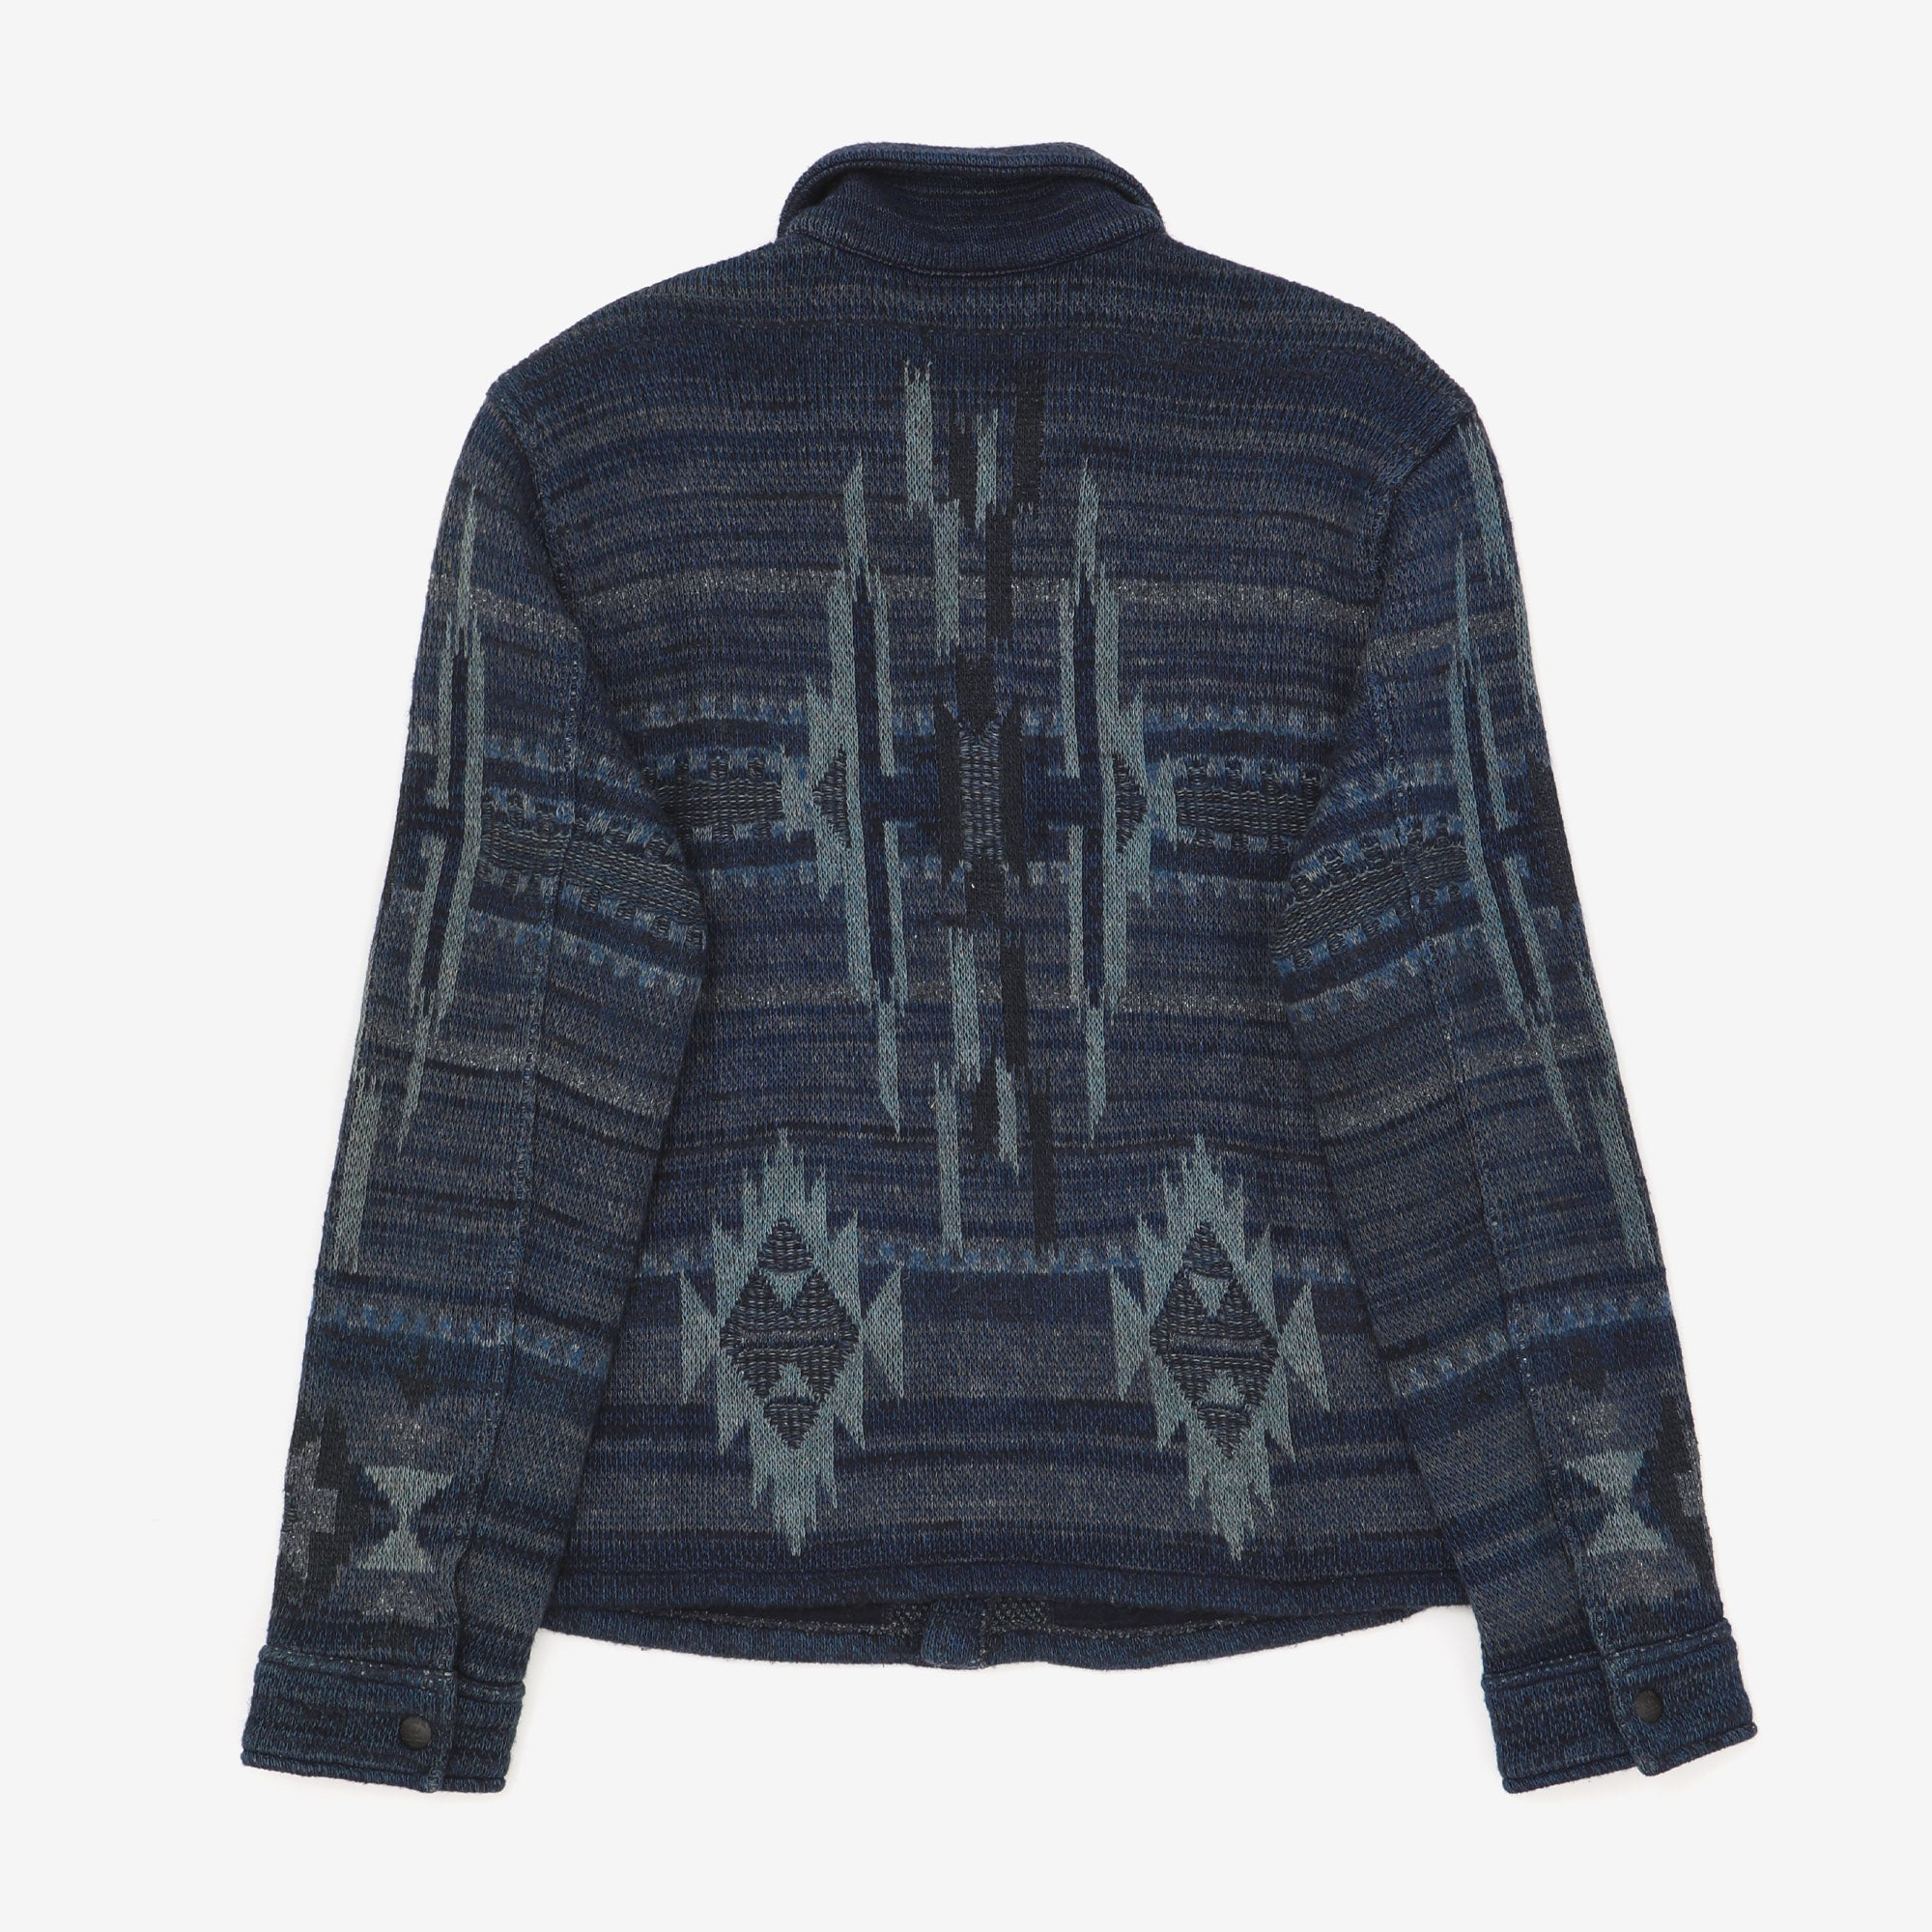 Jacquard Knitted Jacket